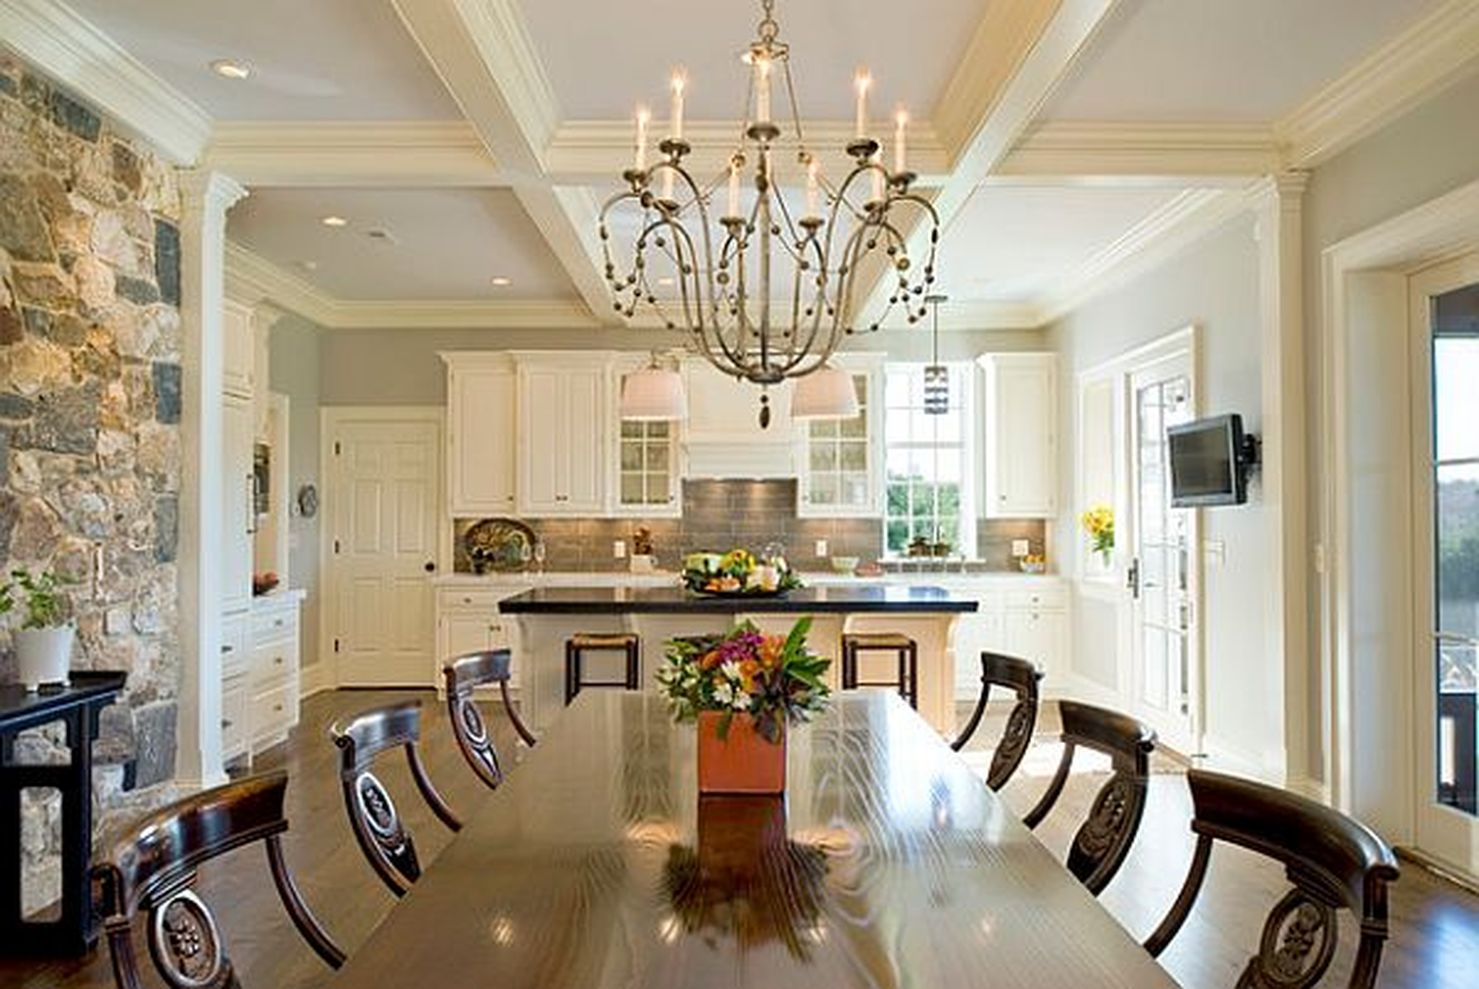 dining room lighting low ceilings | 65 Amazing Dining Room Lights Ideas for Low Ceilings ...